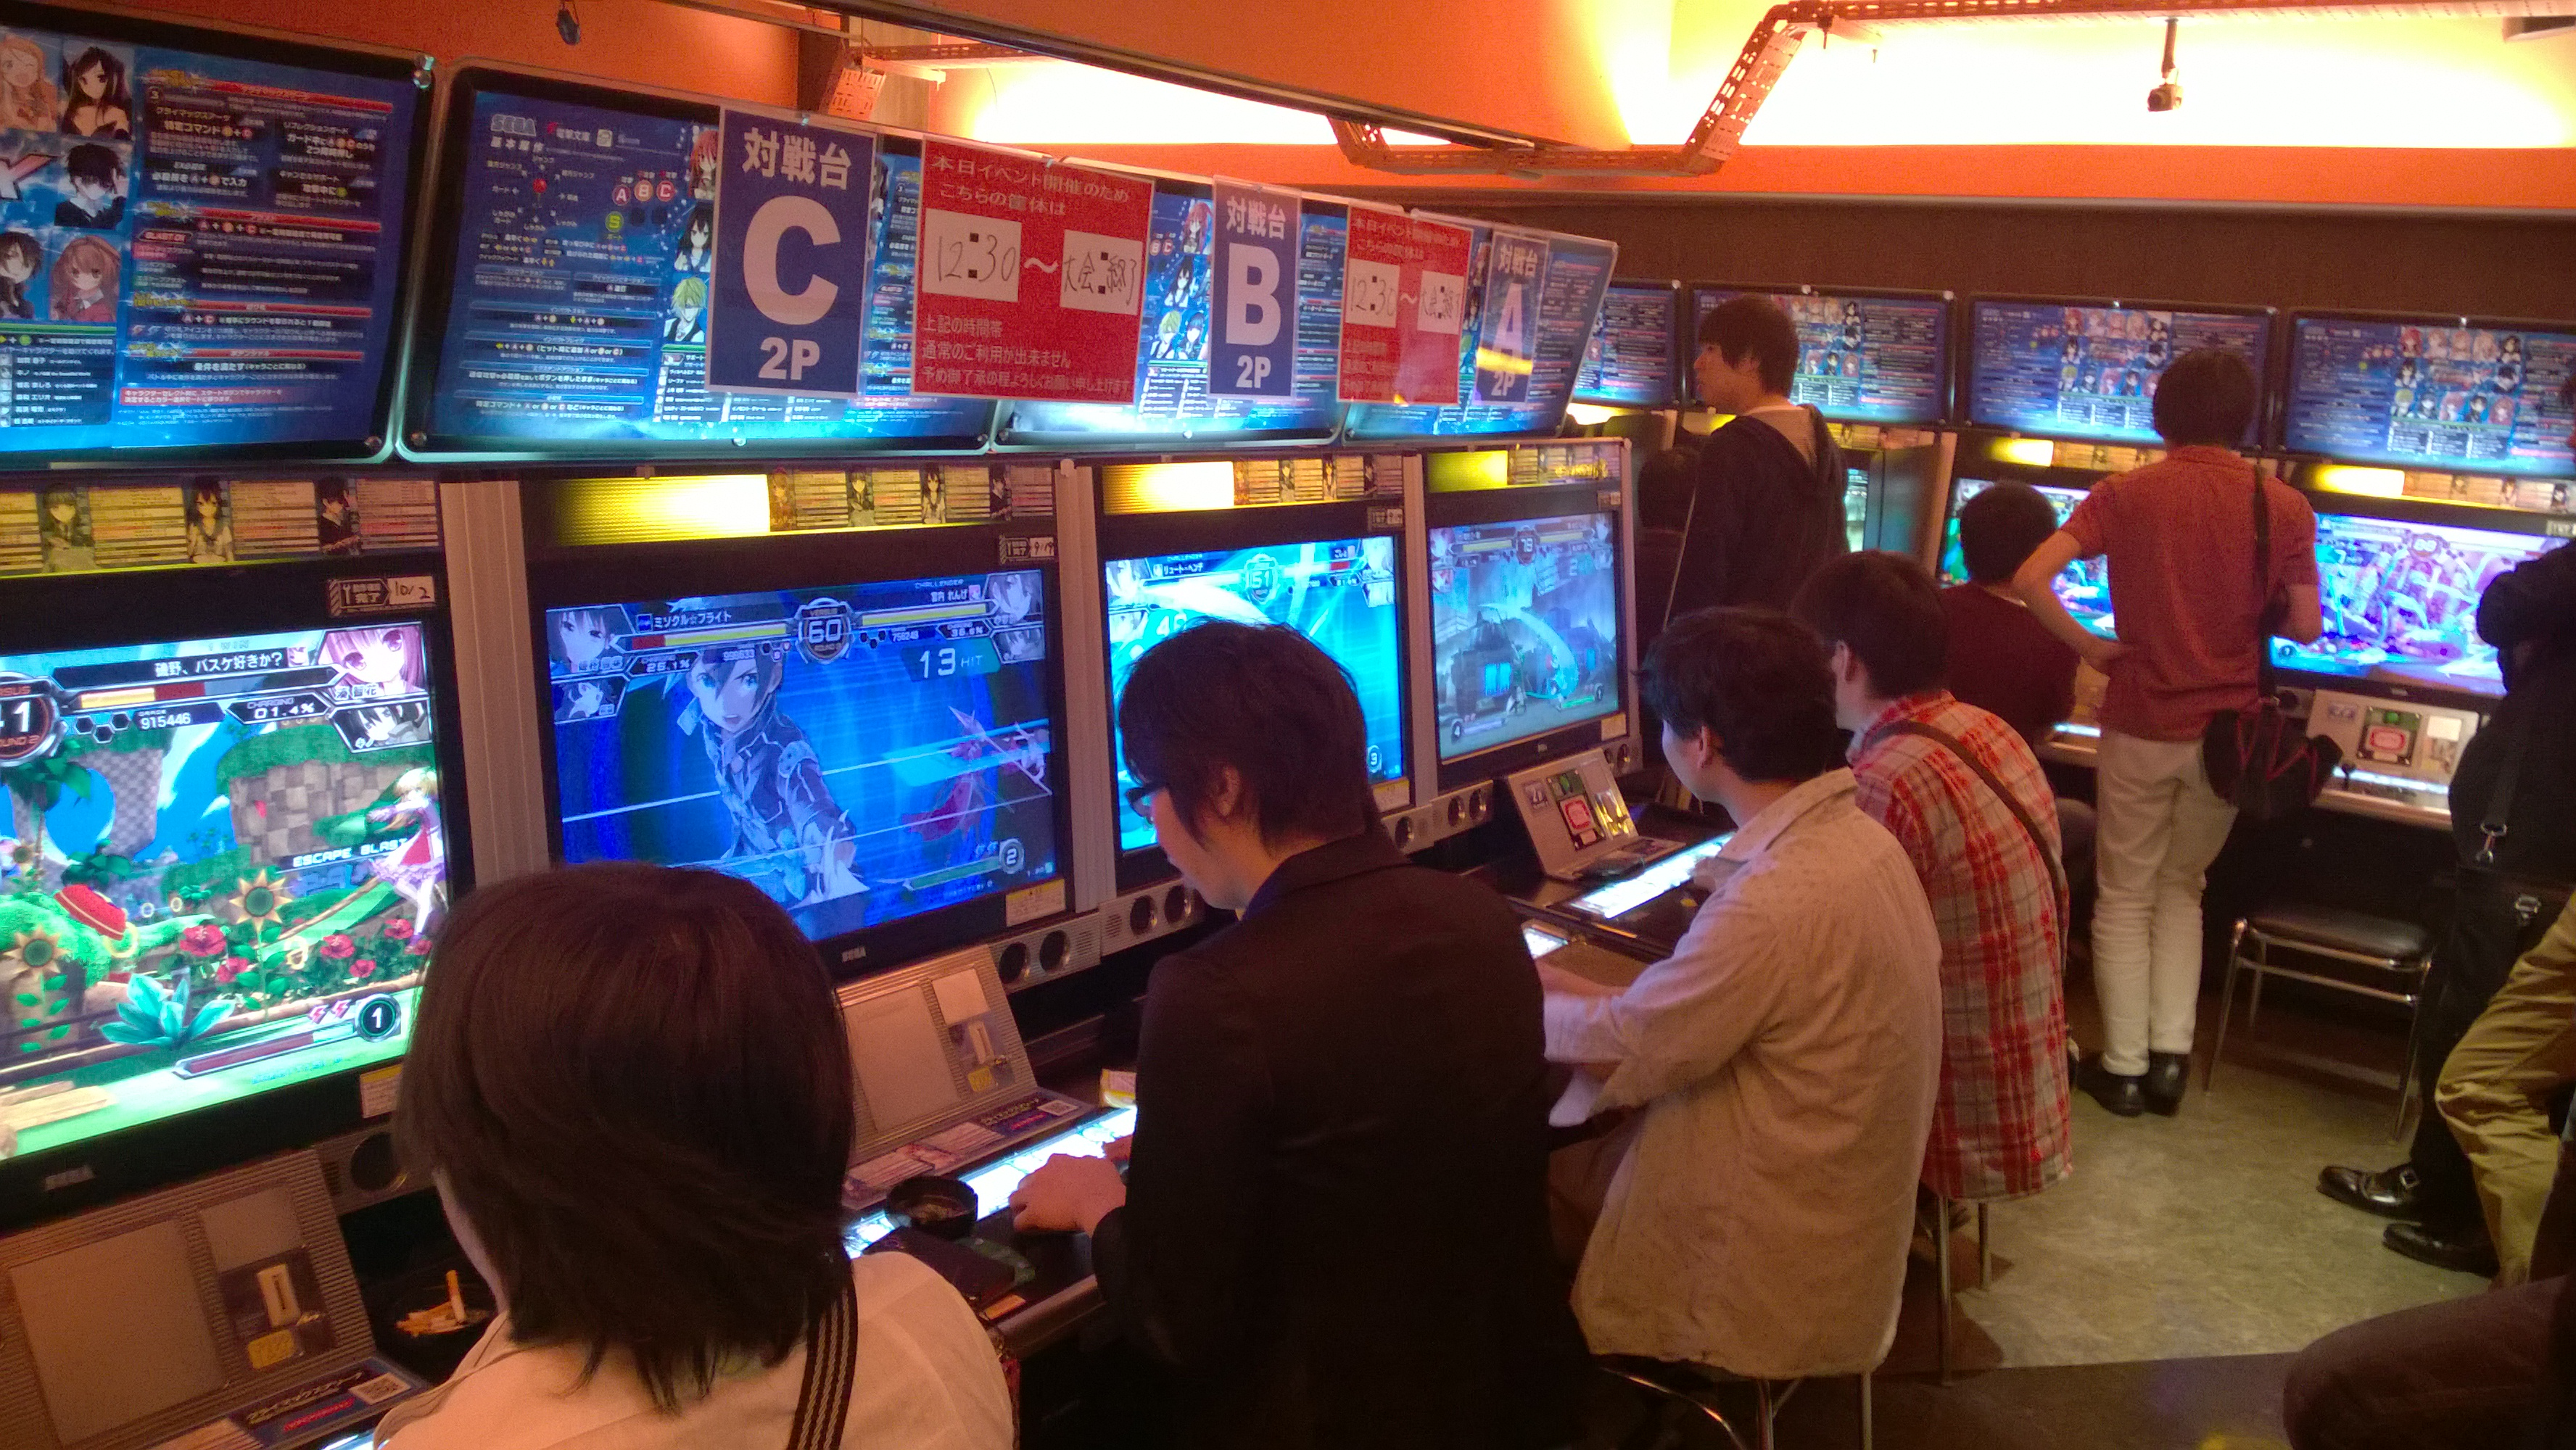 arcade single asian girls Hundreds of explicit images of women and girls as young as 14 from  more naked pictures of girls as young as 14 uploaded online by  the actress and single mom .